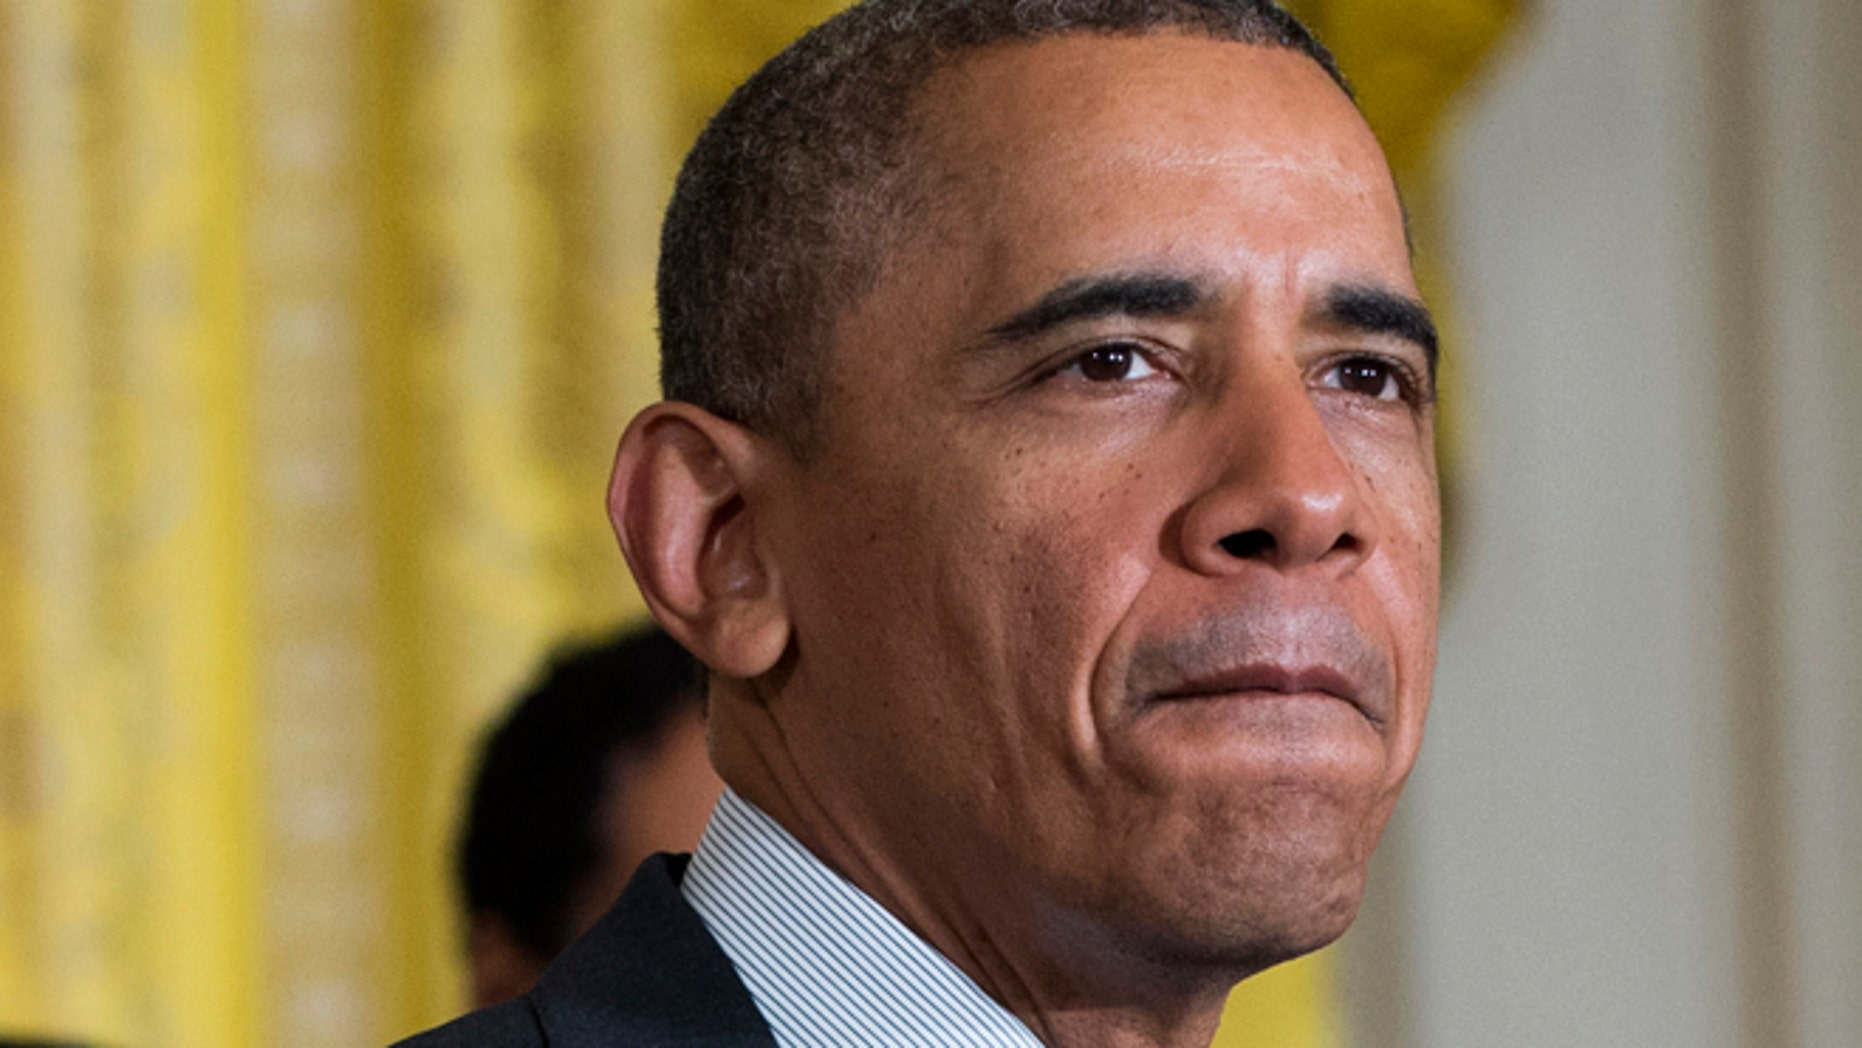 Apr. 30, 2014: President Barack Obama pauses as he speaks in the East Room of the White House in Washington. (AP)